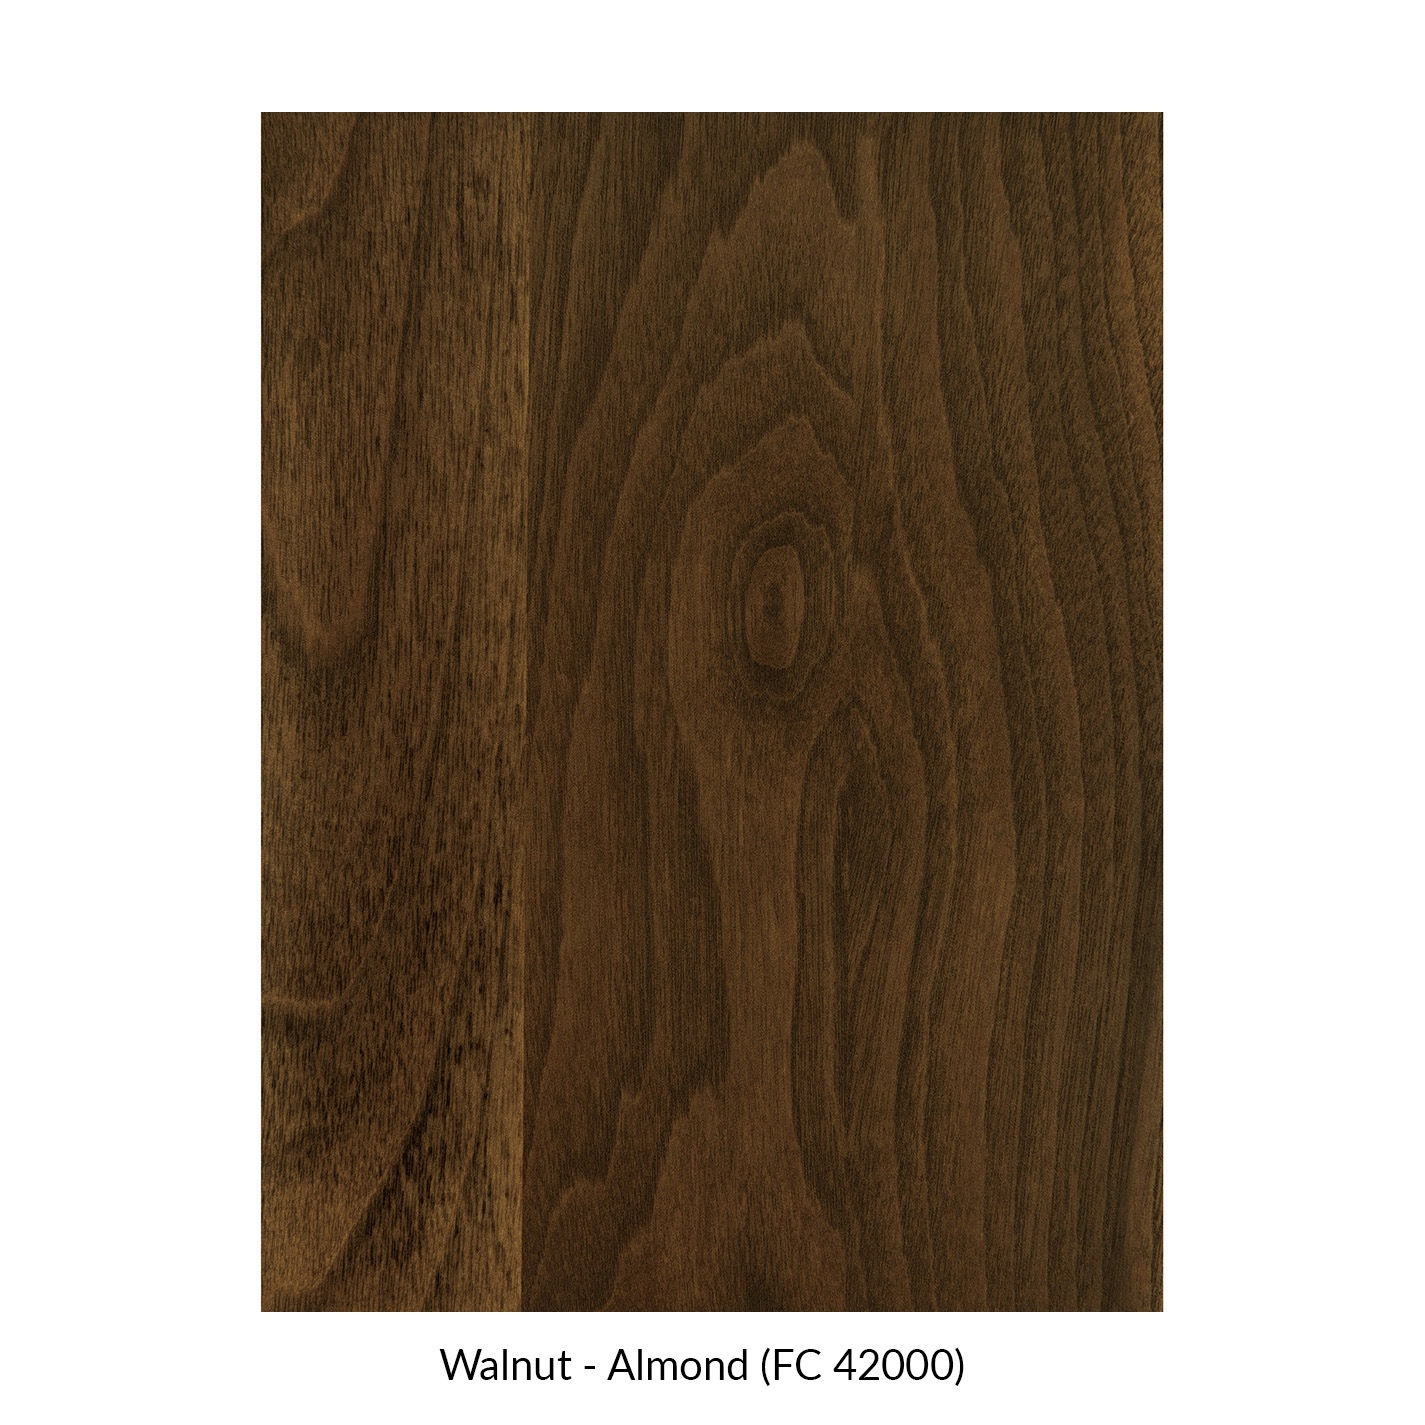 spectrum-walnut-almond-fc-42000.jpg